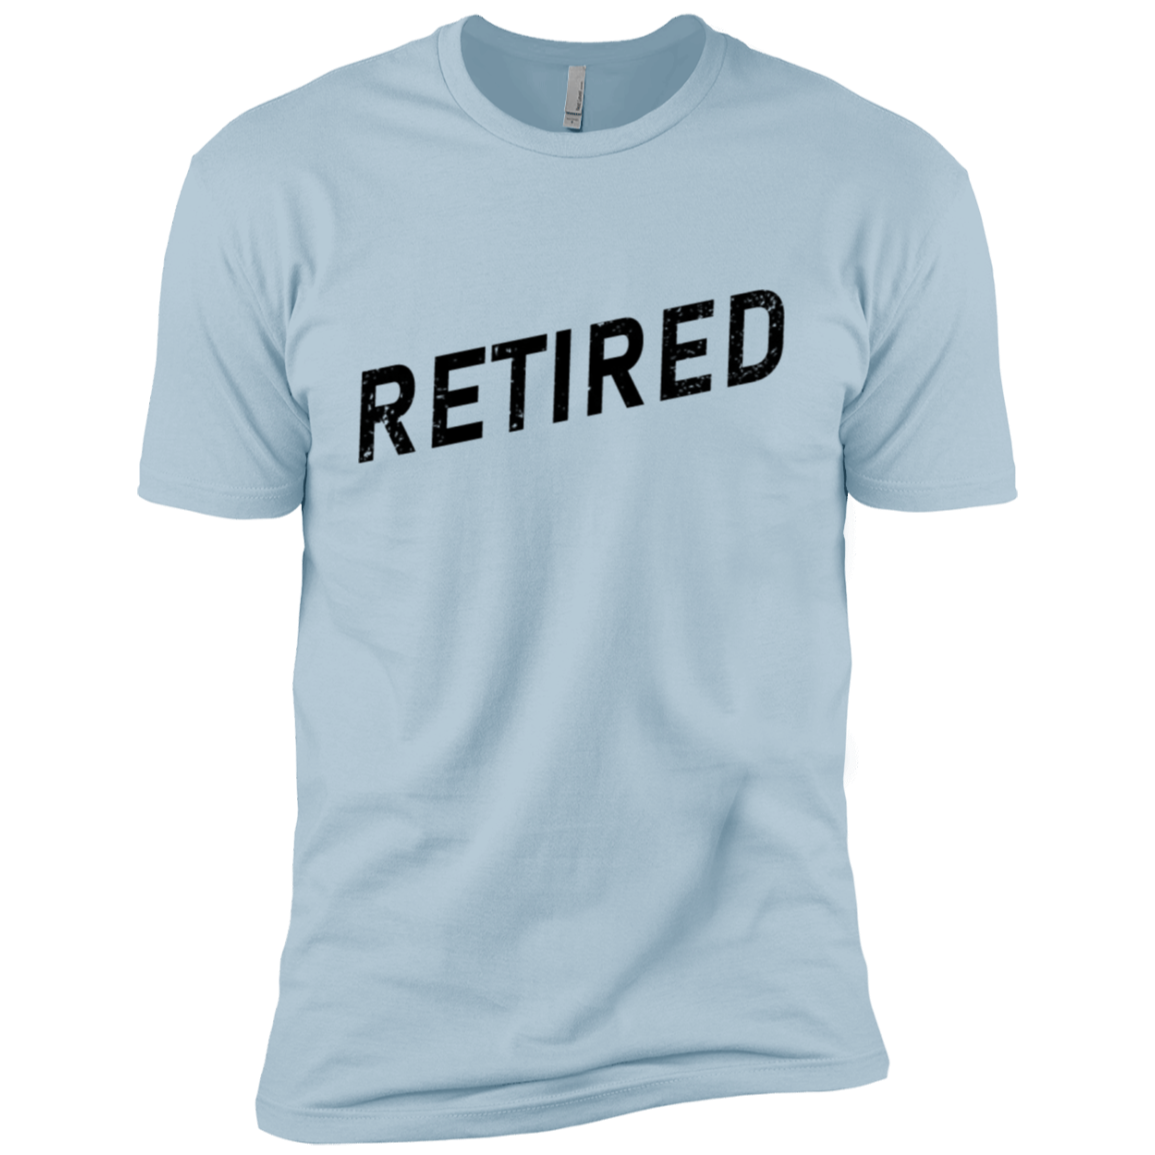 Retired Men's Classic Tee